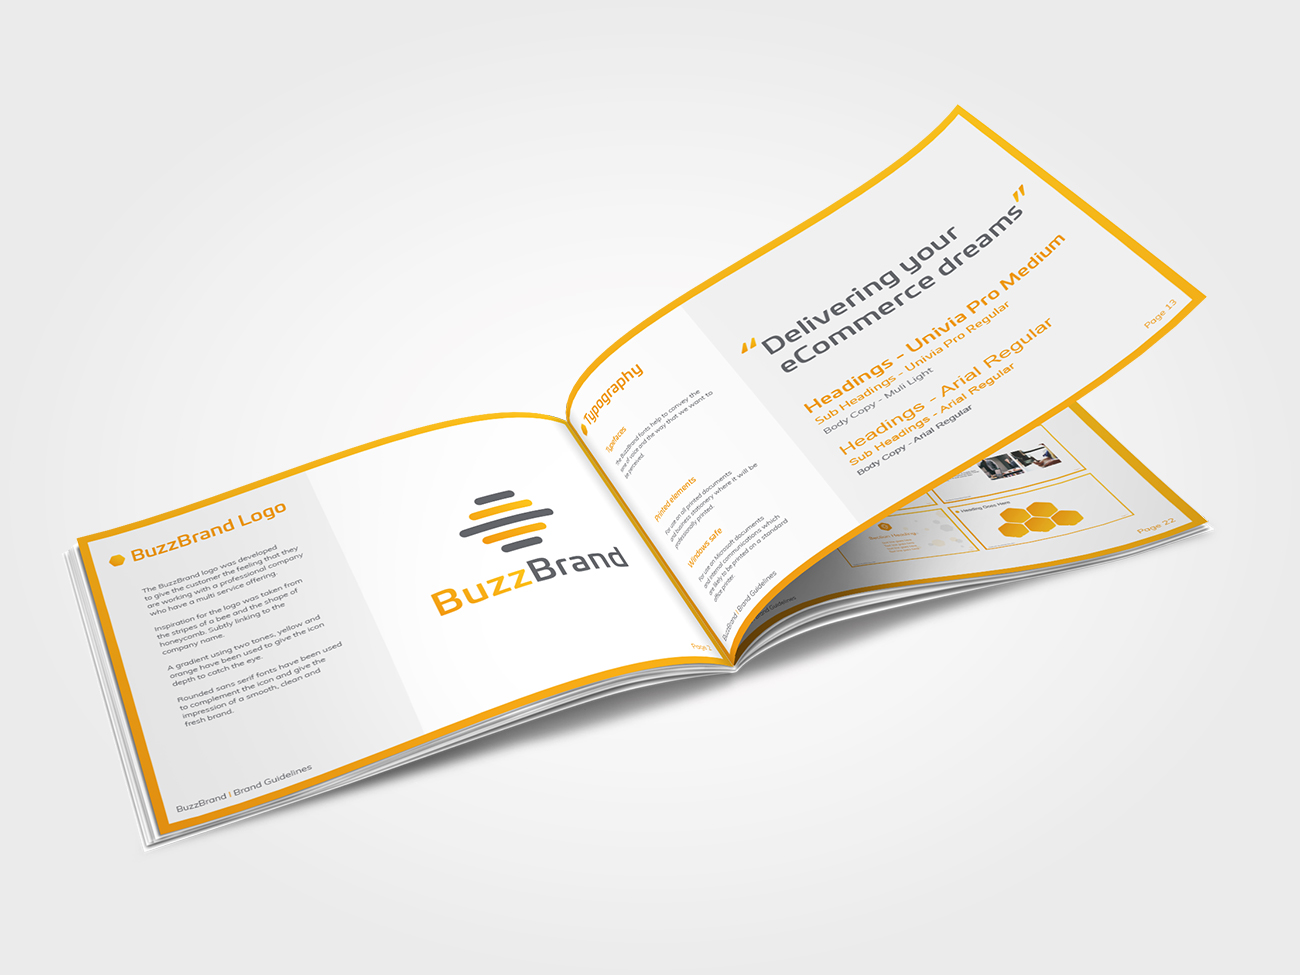 BuzzBrand brand guidelines printed booklet